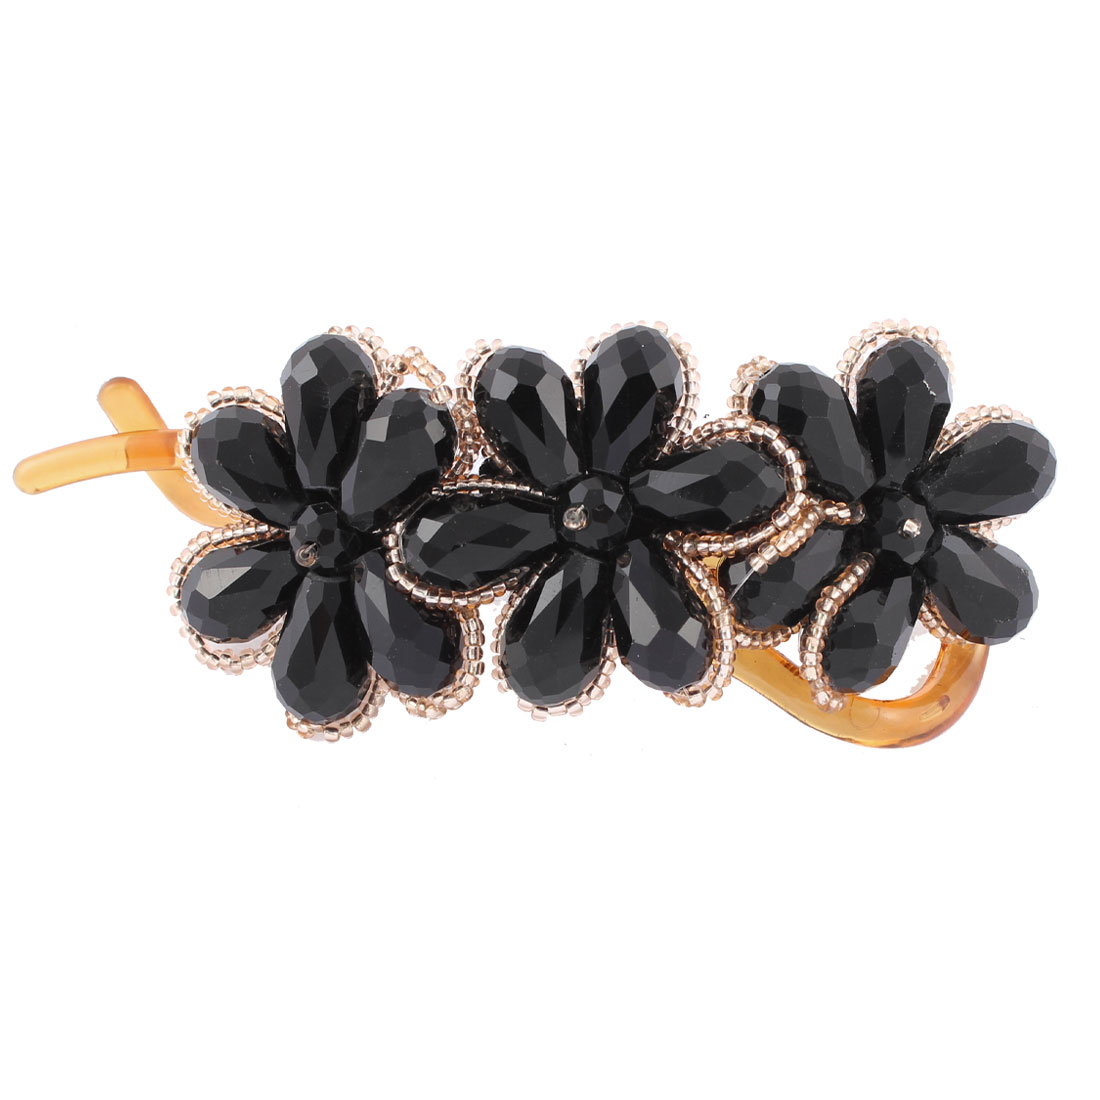 Lady Black Crystal Flower Design Banana Hair Clip Claw Comb Clasp Hairpins Helper